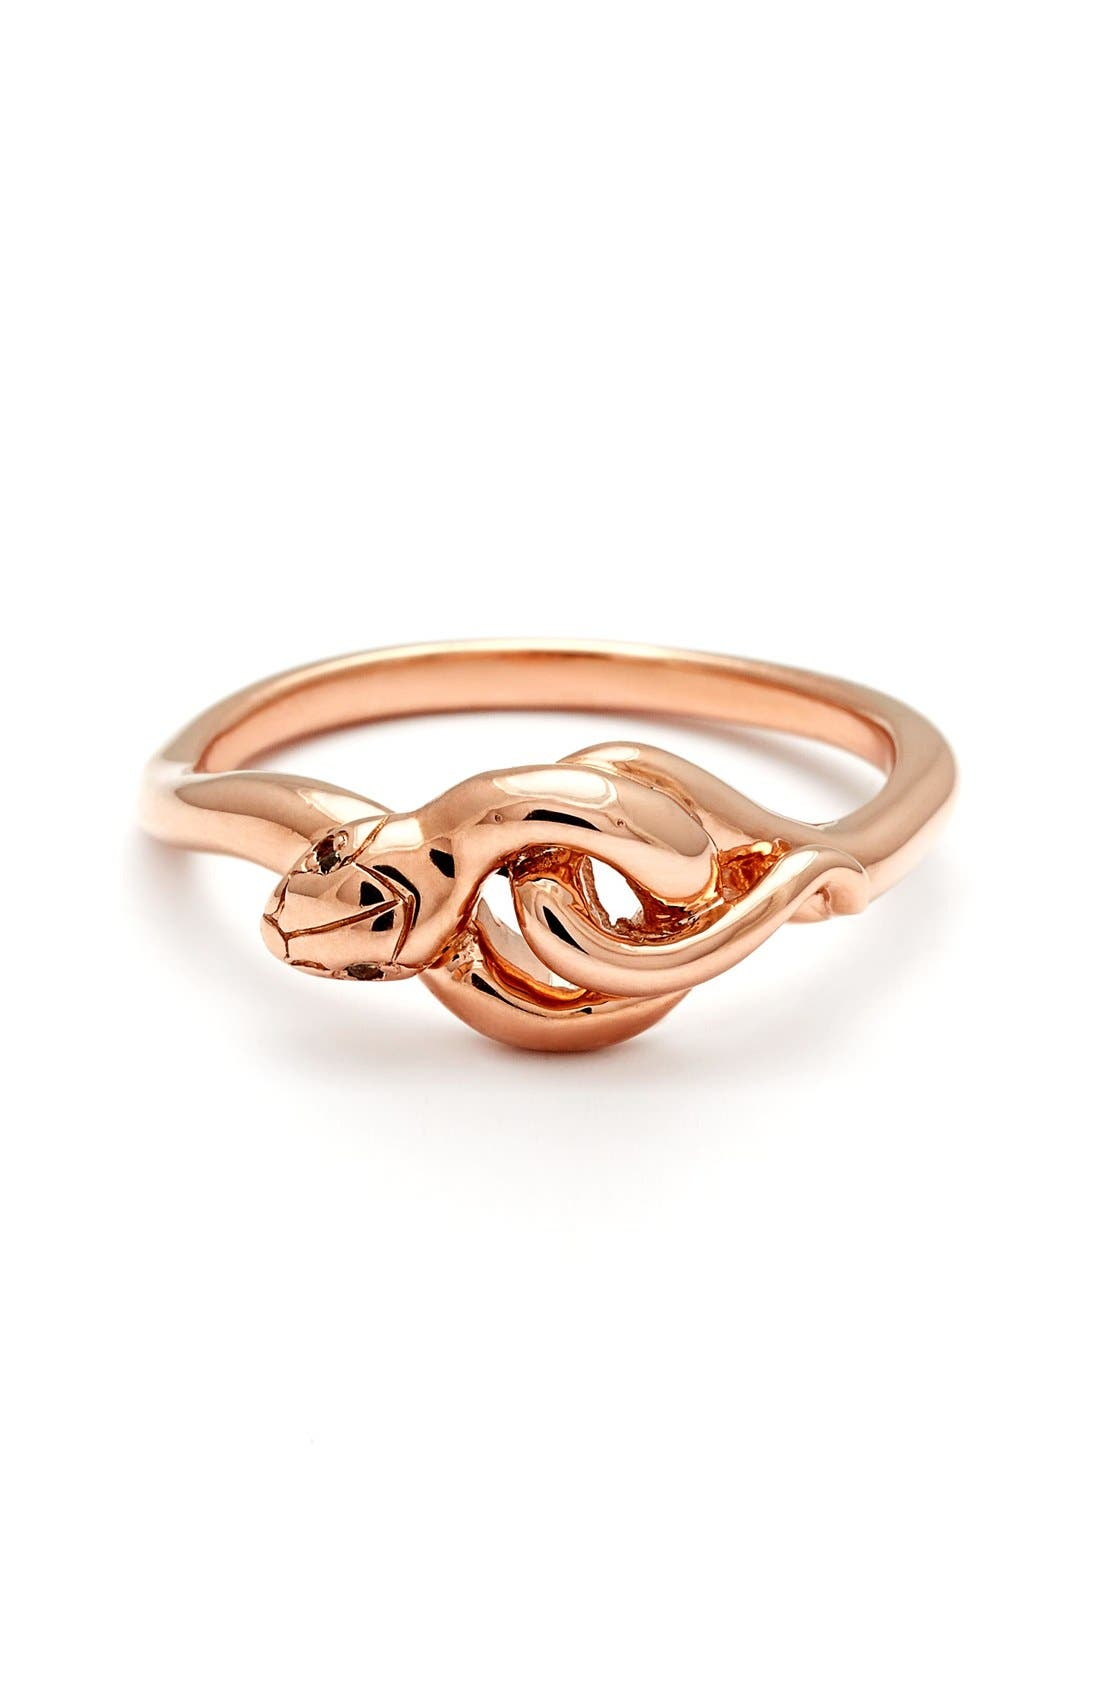 'Small Serpent' Rose Gold Ring,                             Main thumbnail 1, color,                             ROSE/ GOLD/ CHAMPAGNE